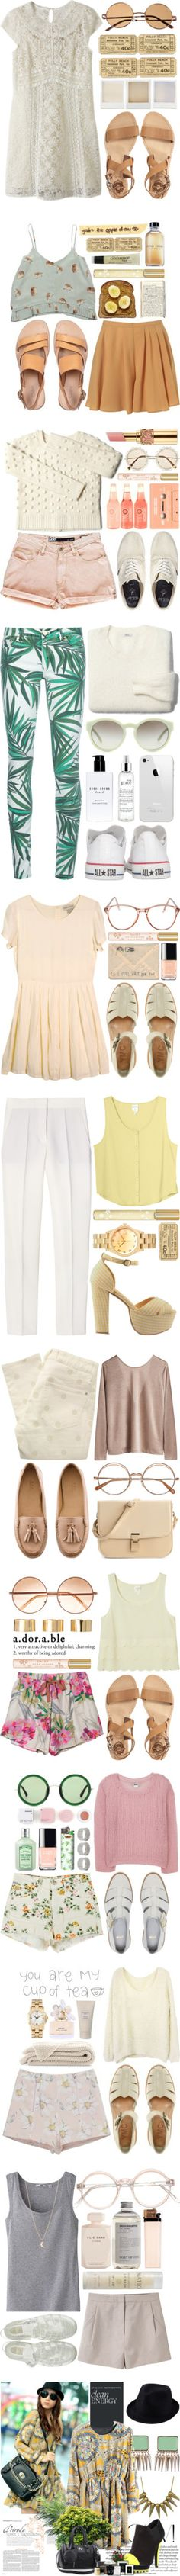 """""""lol its a collection"""" by miast ❤ liked on Polyvore"""